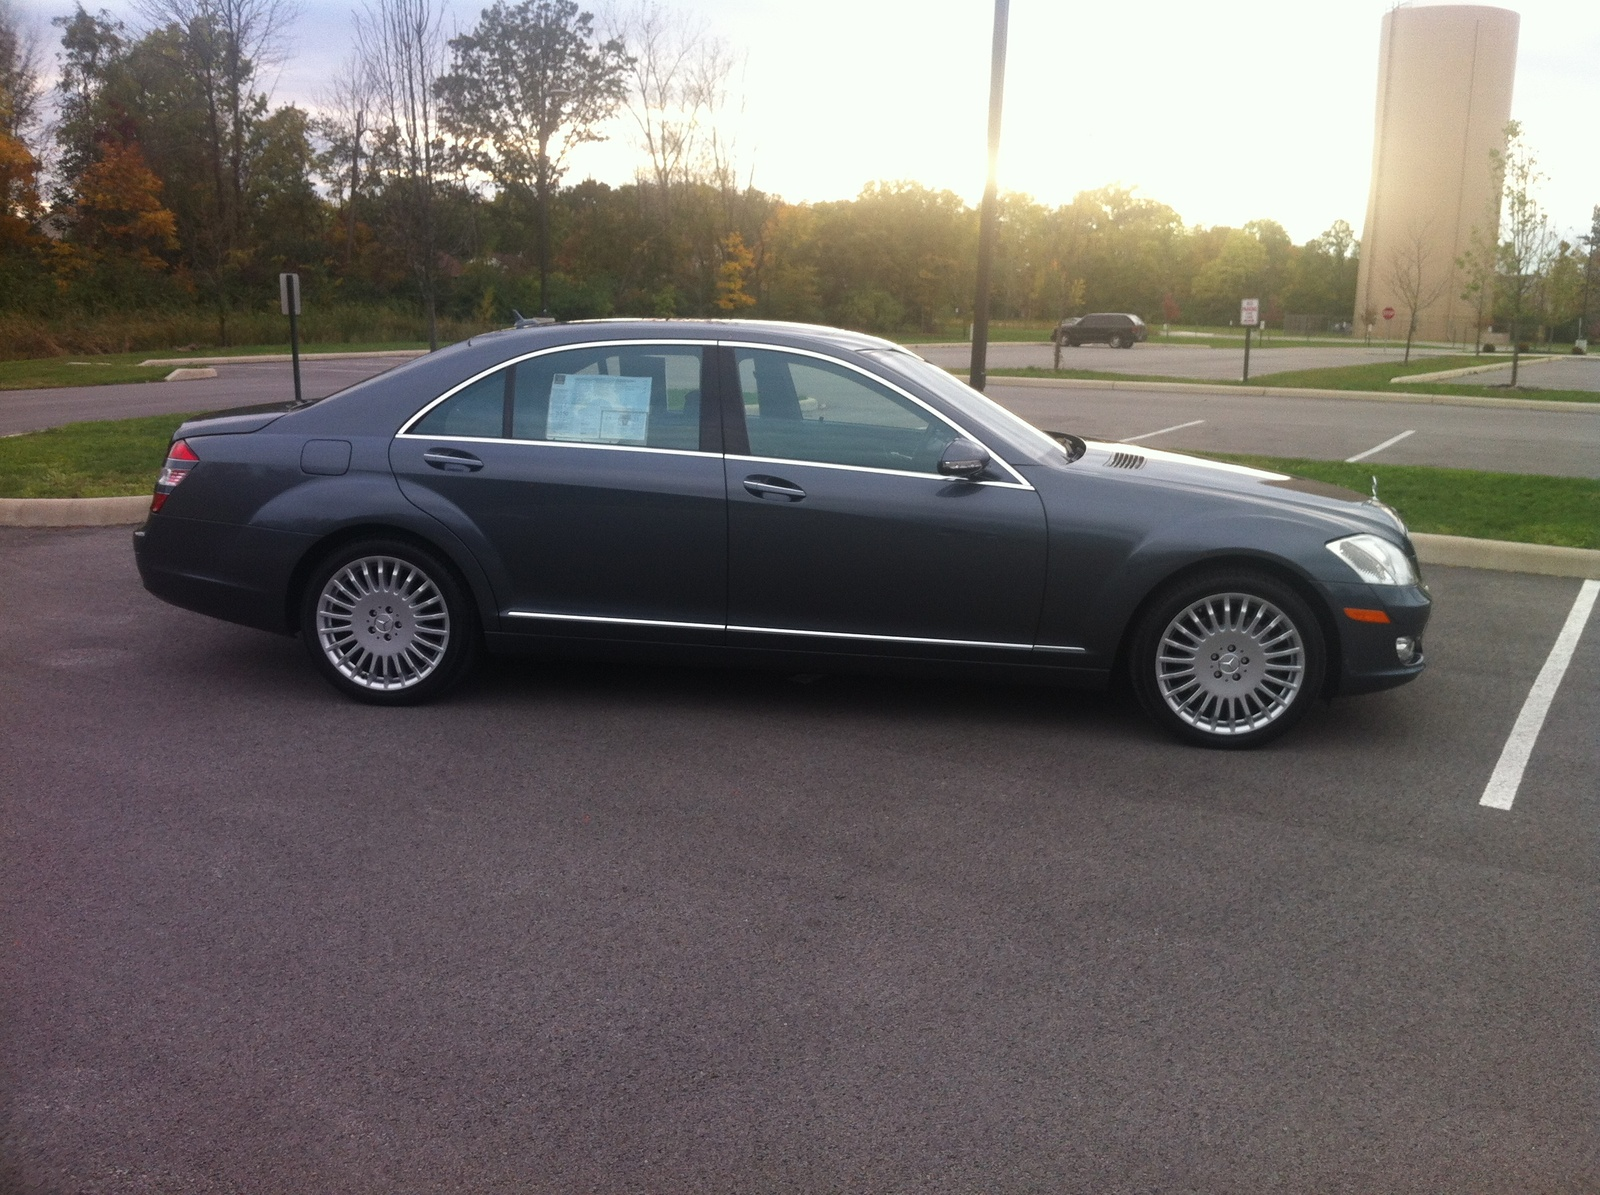 Picture of 2007 mercedes benz s class s550 4matic awd for 2007 mercedes benz s class 550